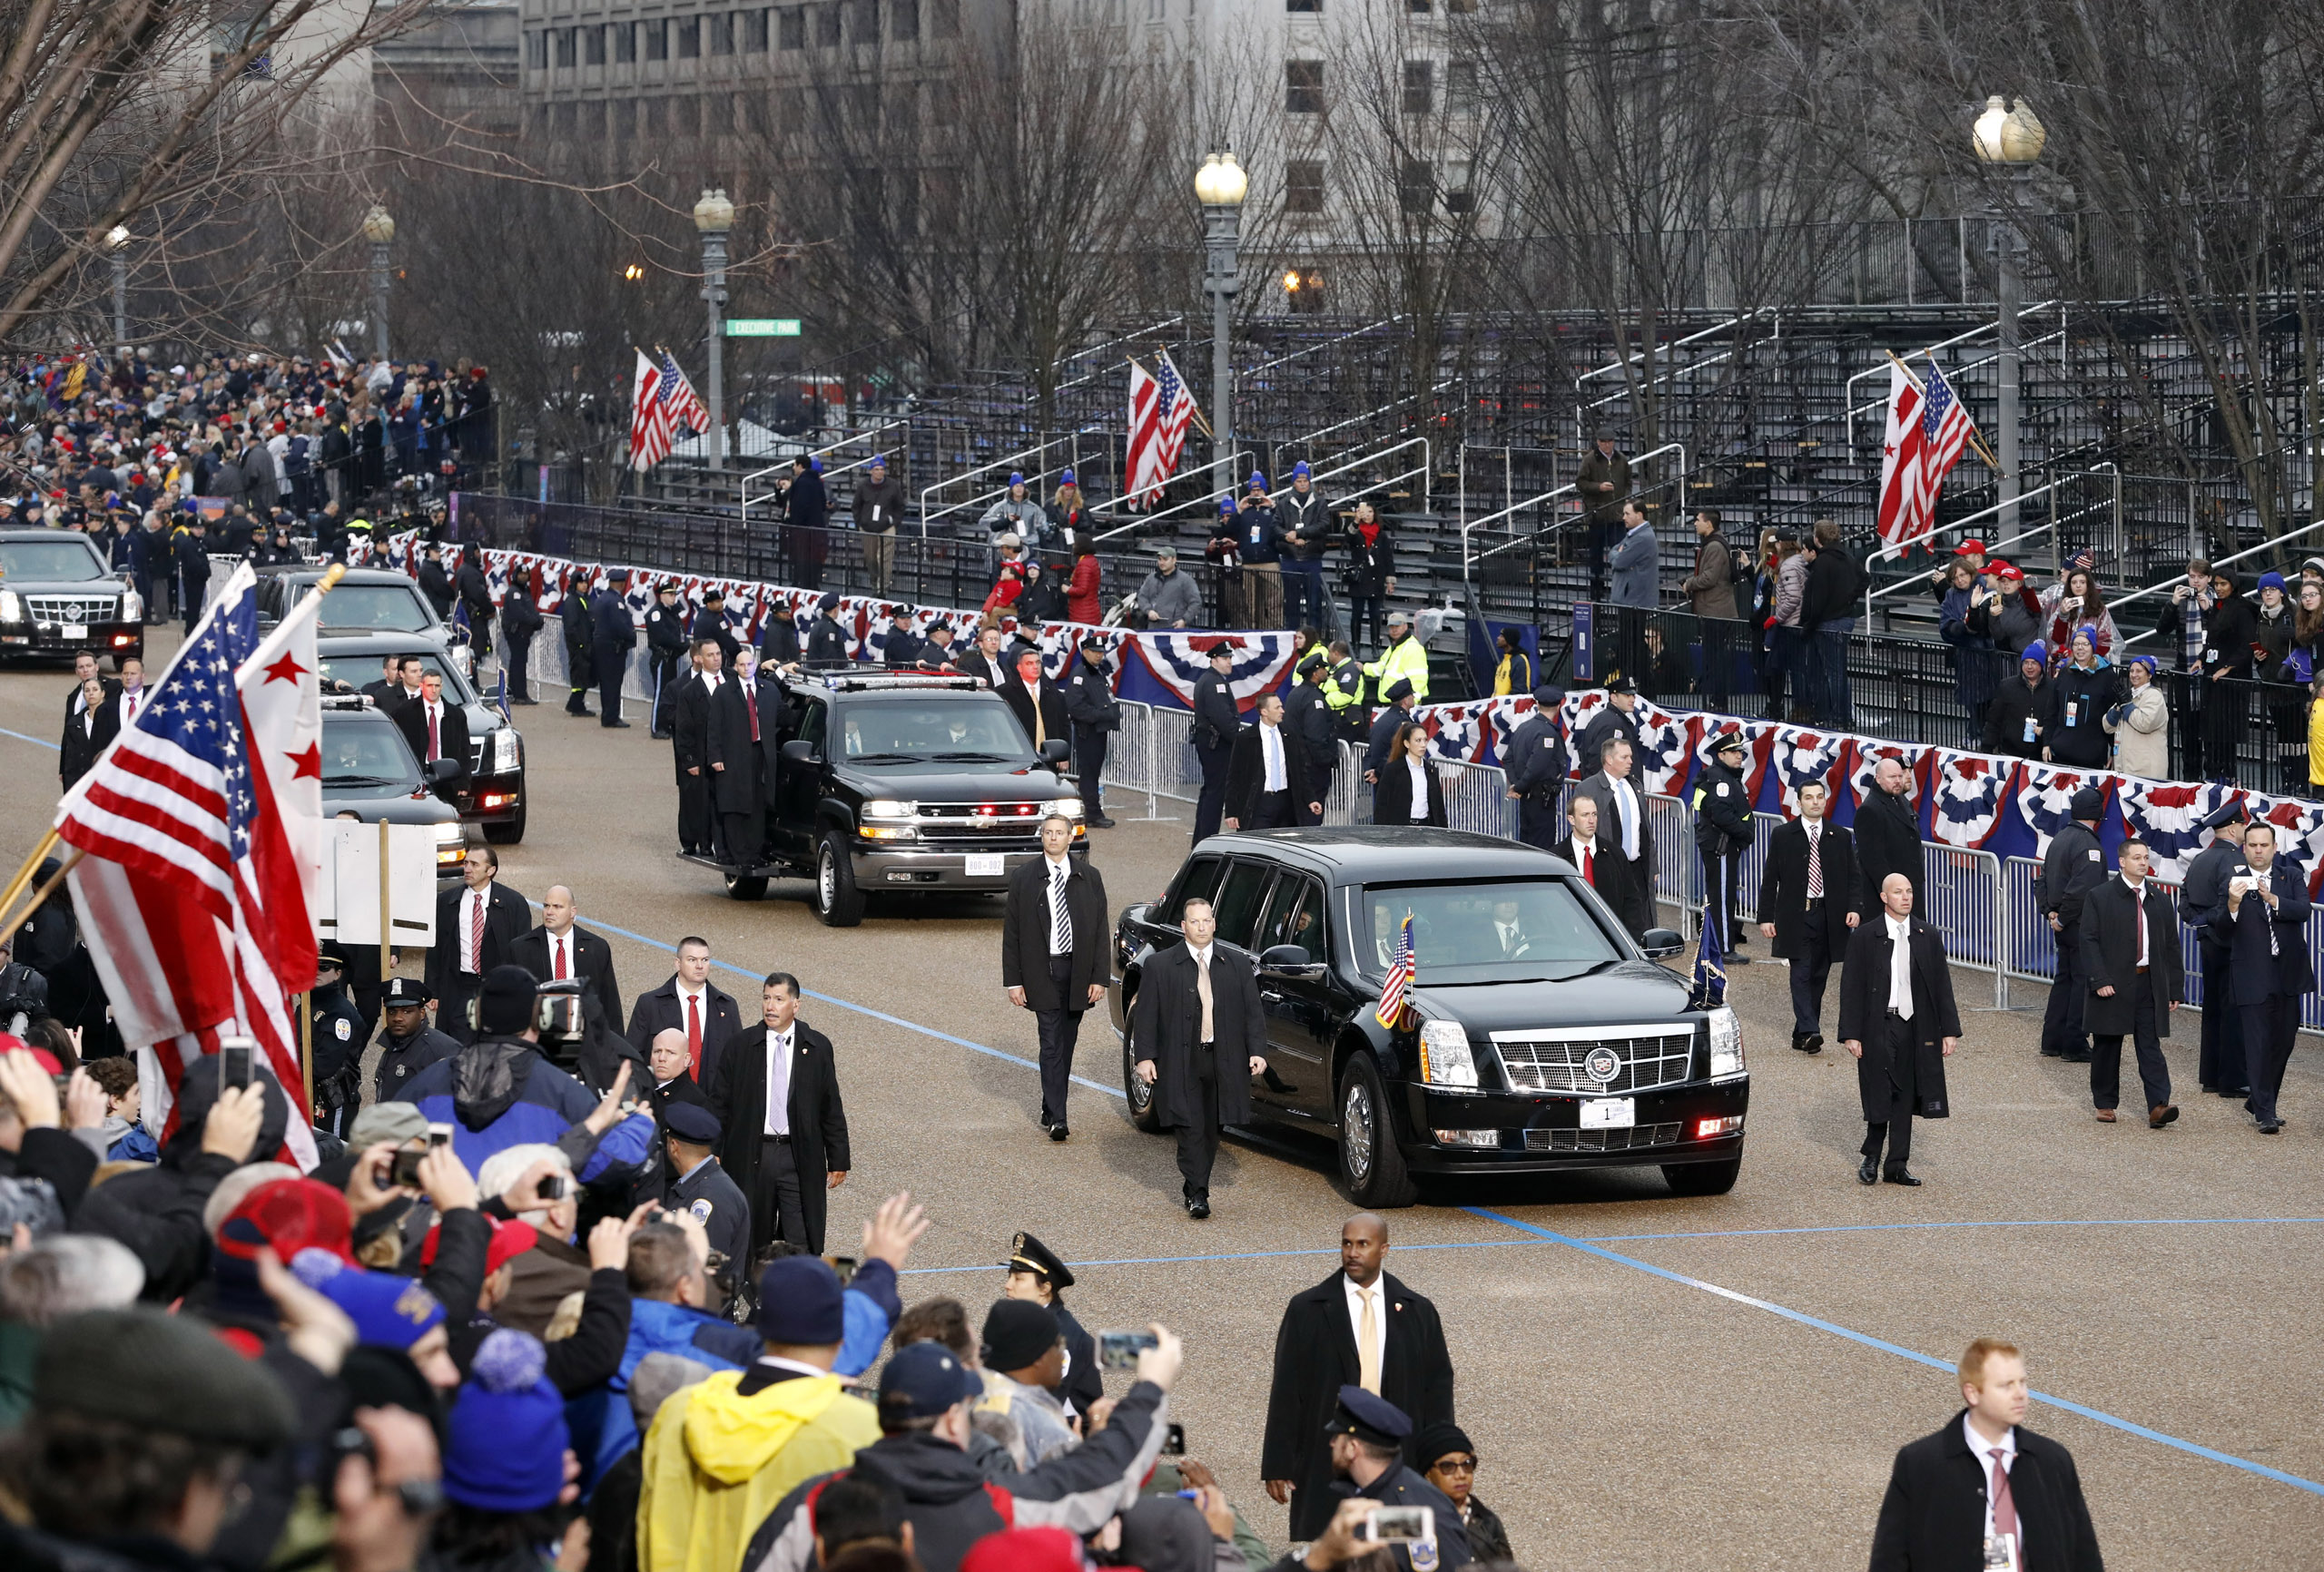 President Donald Trump's armored limousine is escorted for the inaugural parade in Washington, on Jan. 20, 2017.